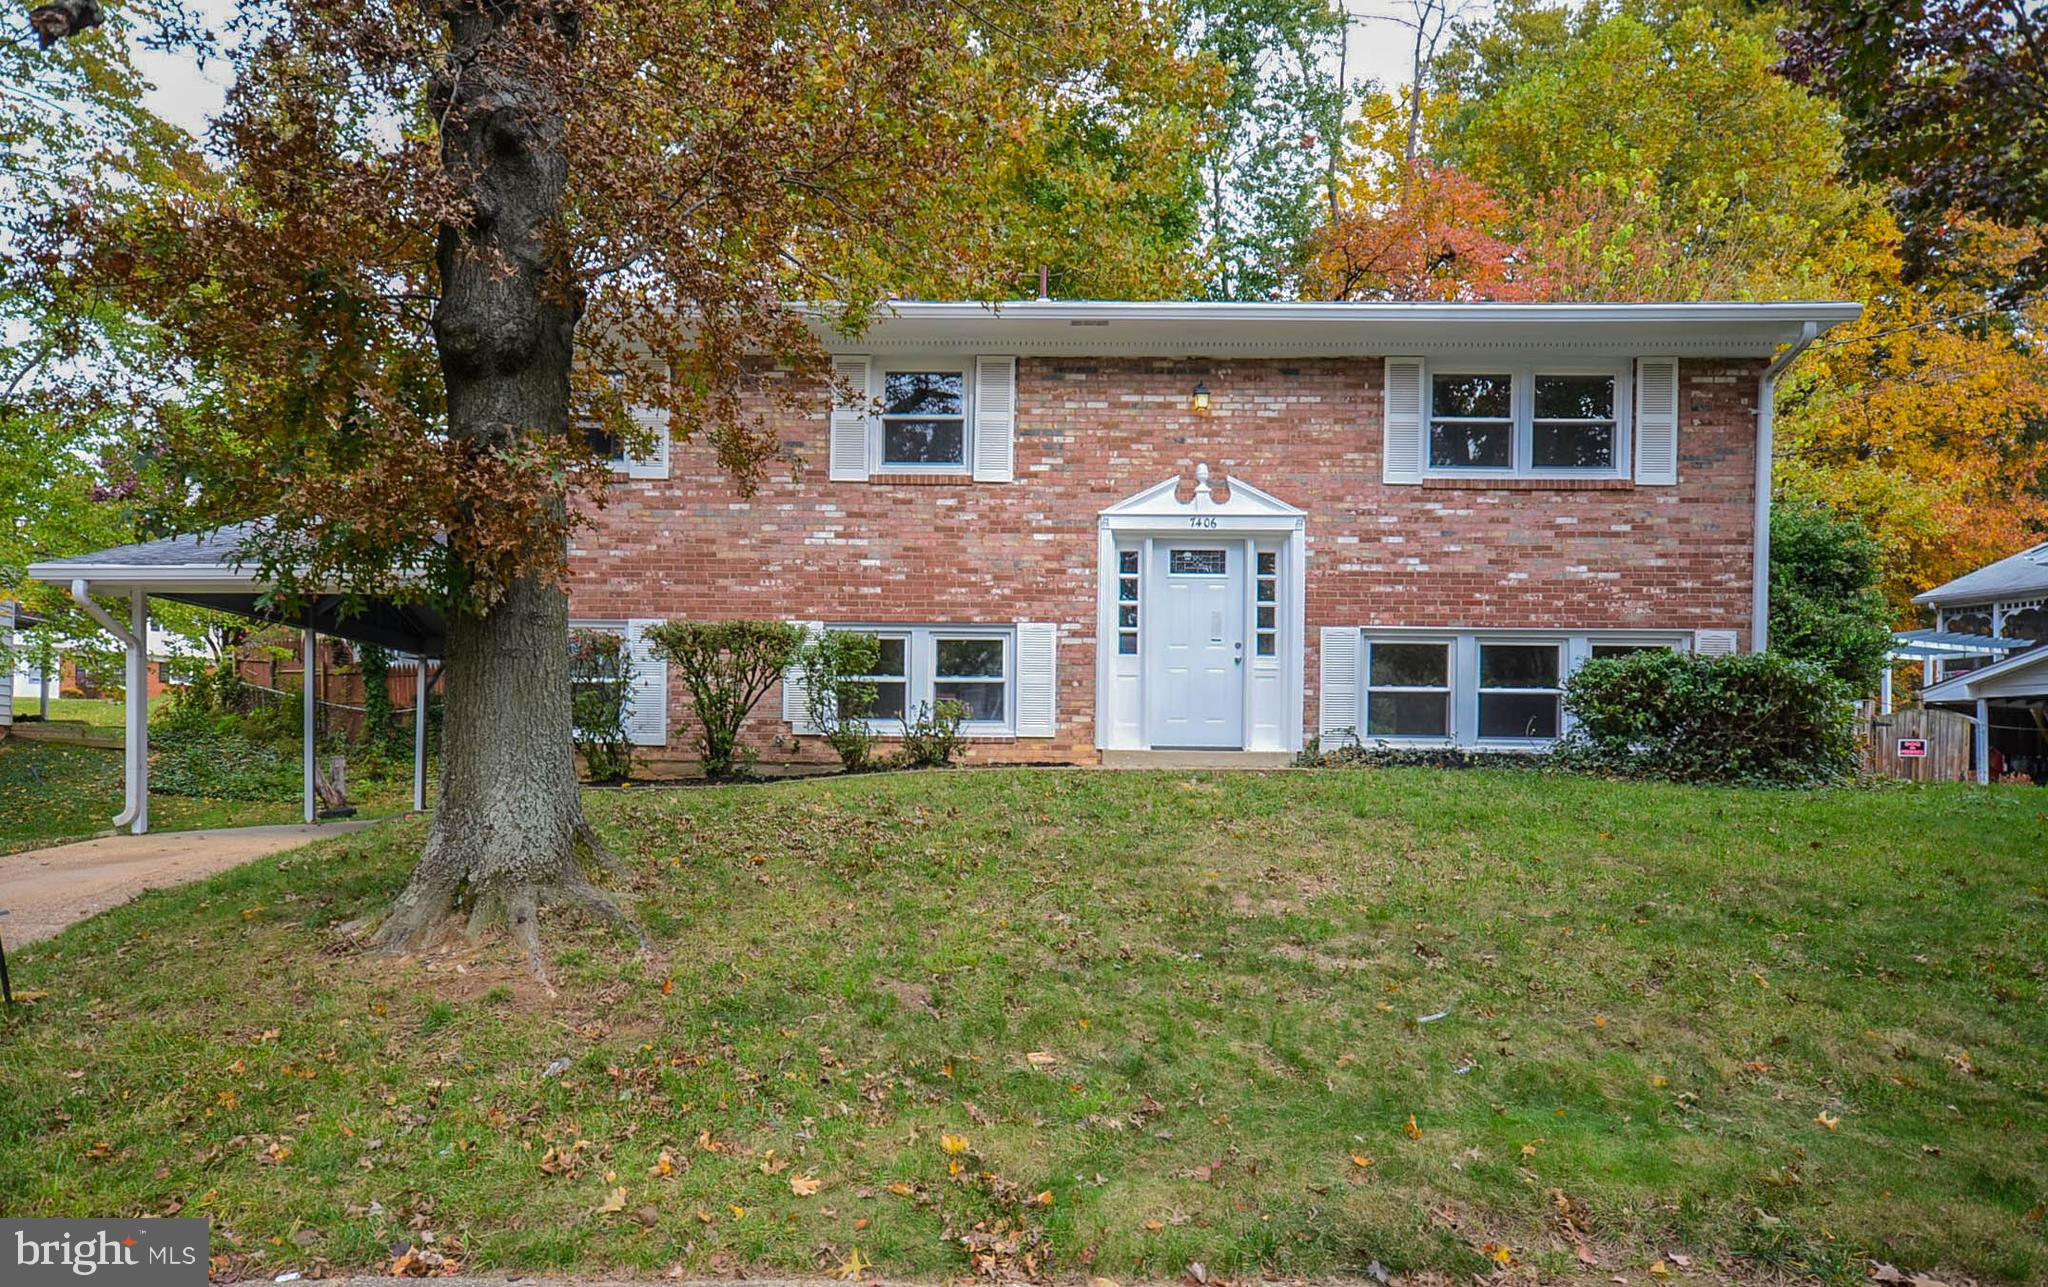 7406 LONGBRANCH DRIVE, NEW CARROLLTON, MD 20784